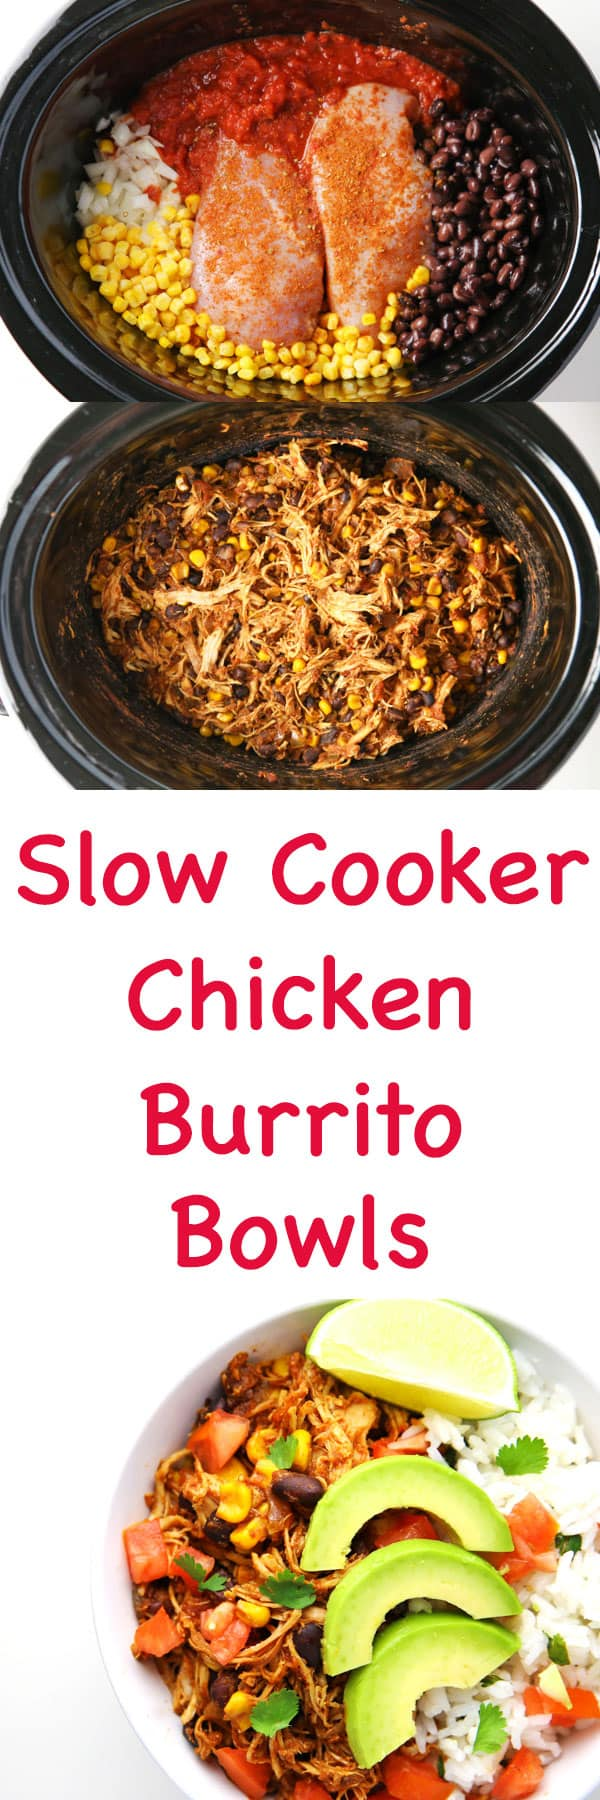 These Slow Cooker Chicken Burrito Bowls are so easy to make and are a crowd favorite!